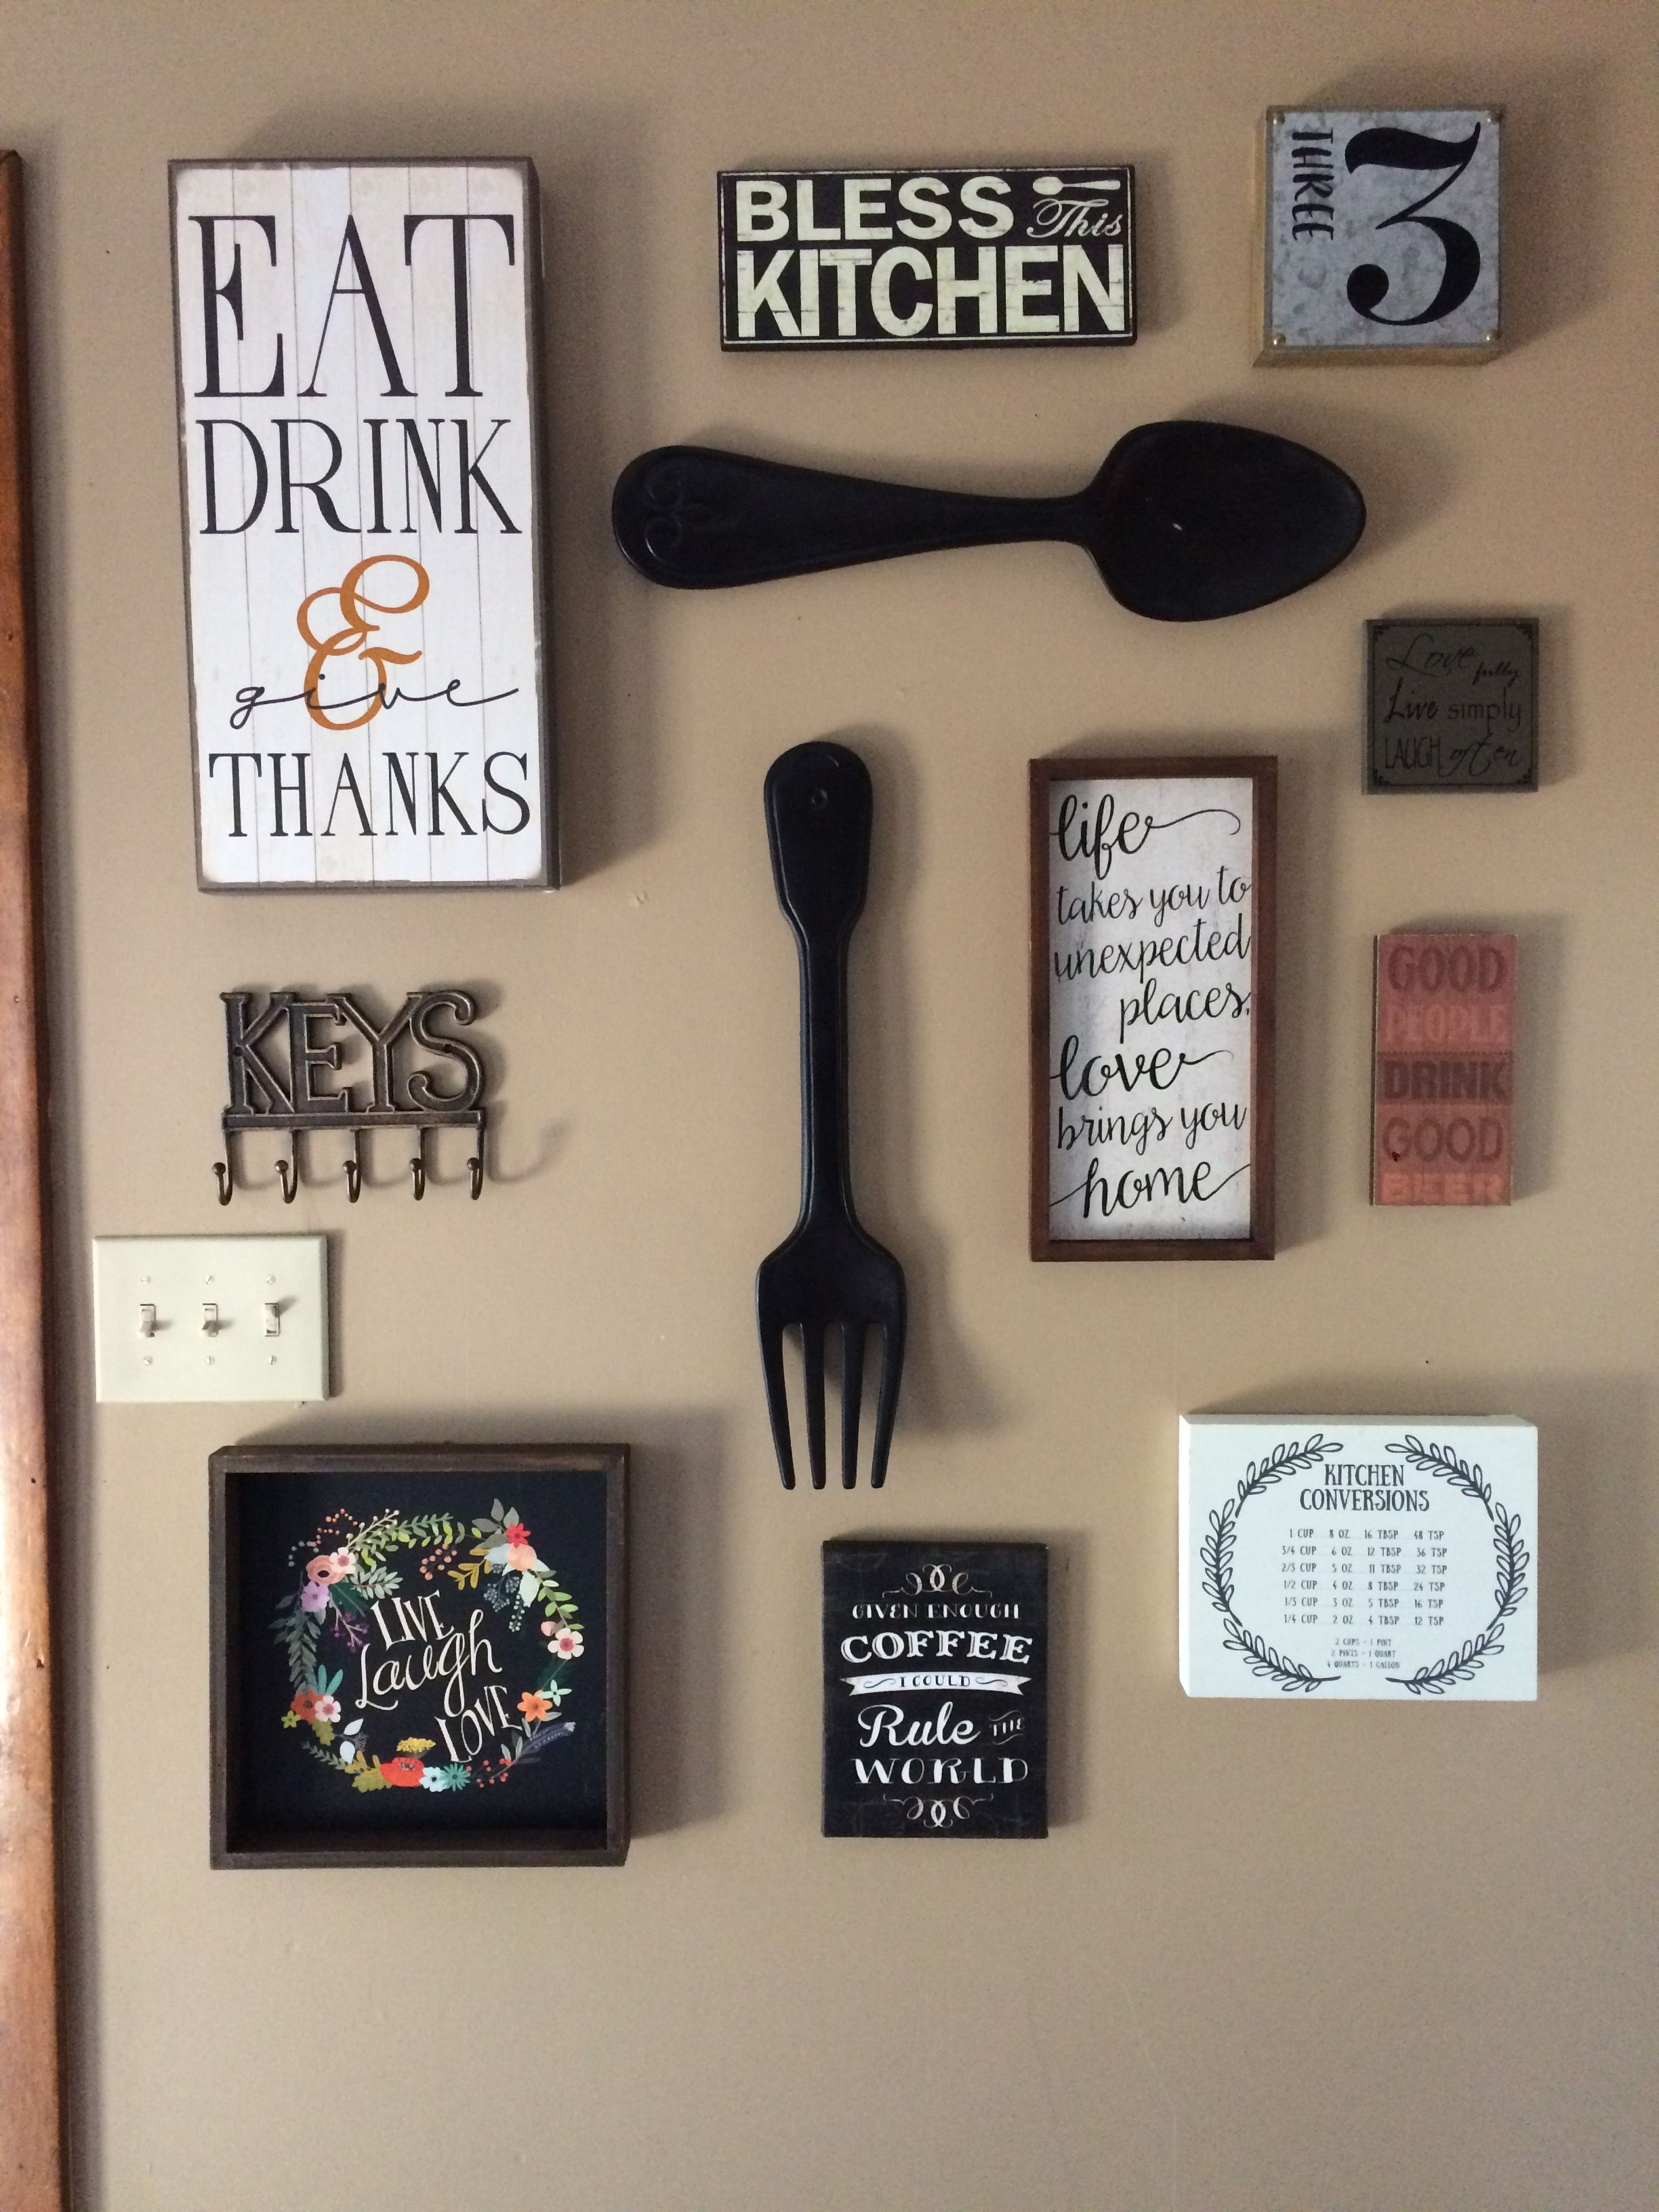 on hanging kitchen ideas plate inspiration for coriver plates wall decor white frame